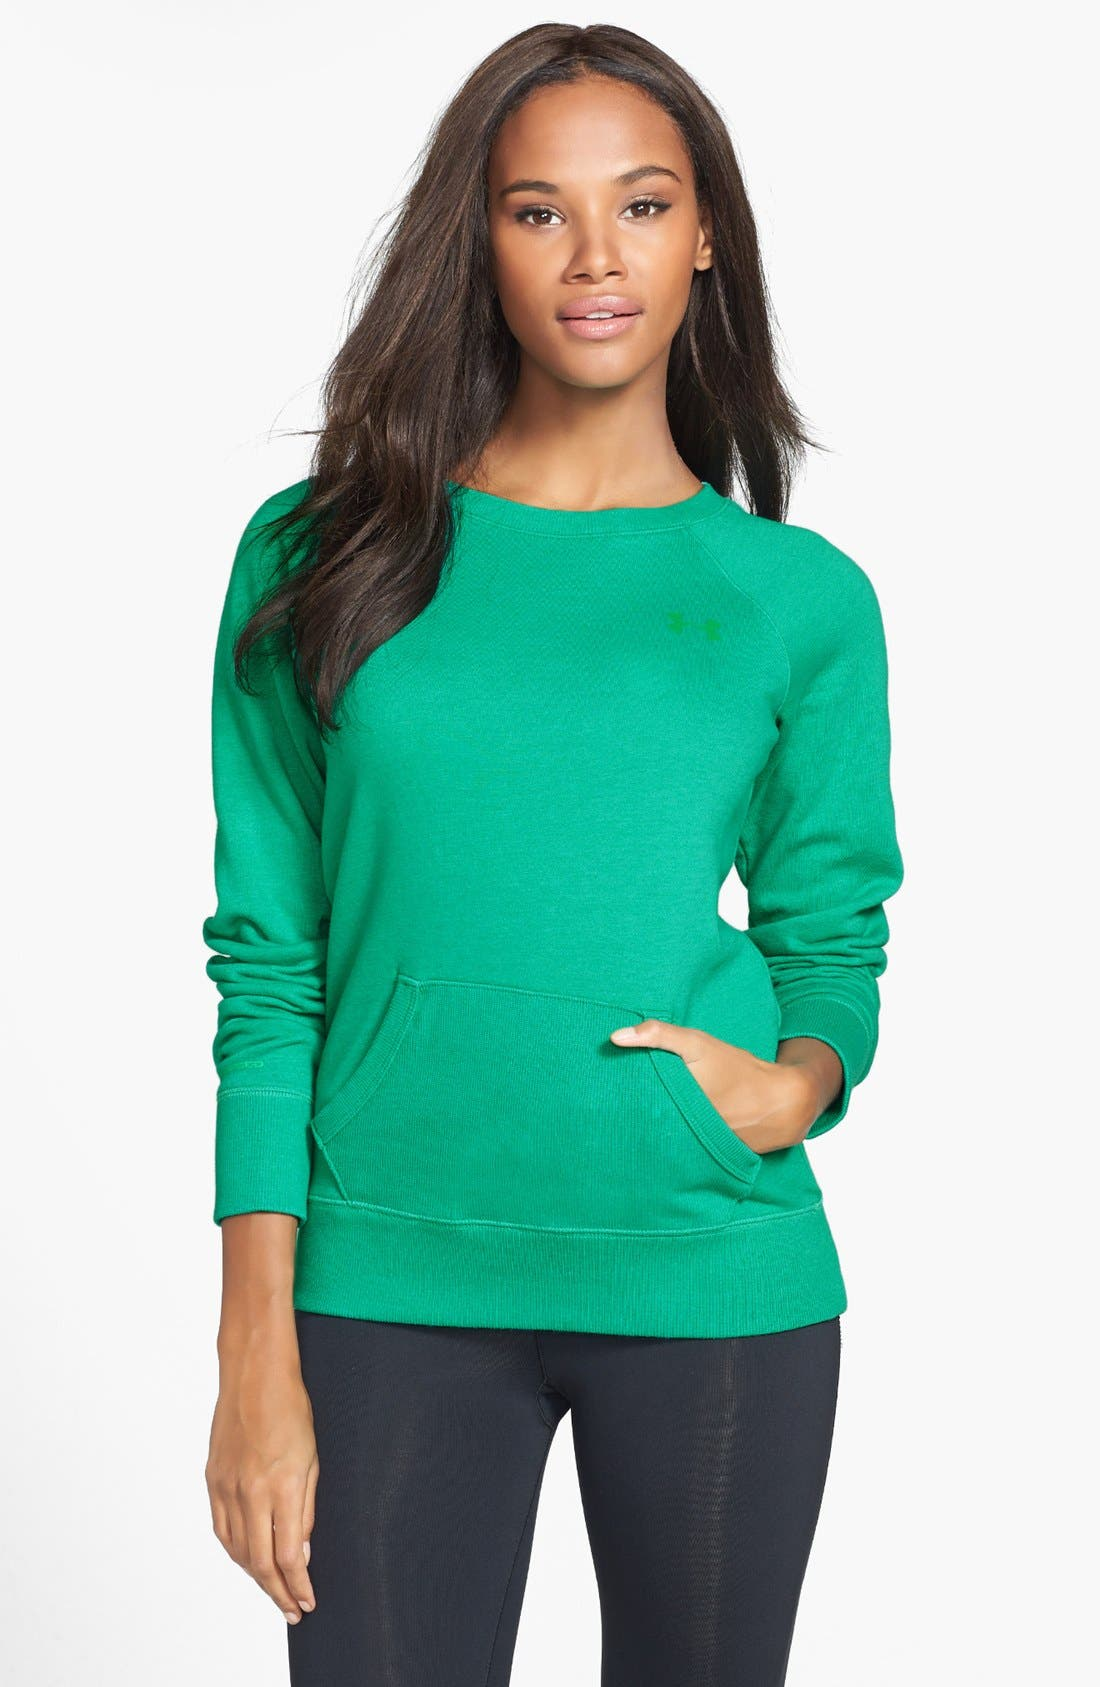 Main Image - Under Armour 'Legacy' Charged Cotton® Crewneck Top